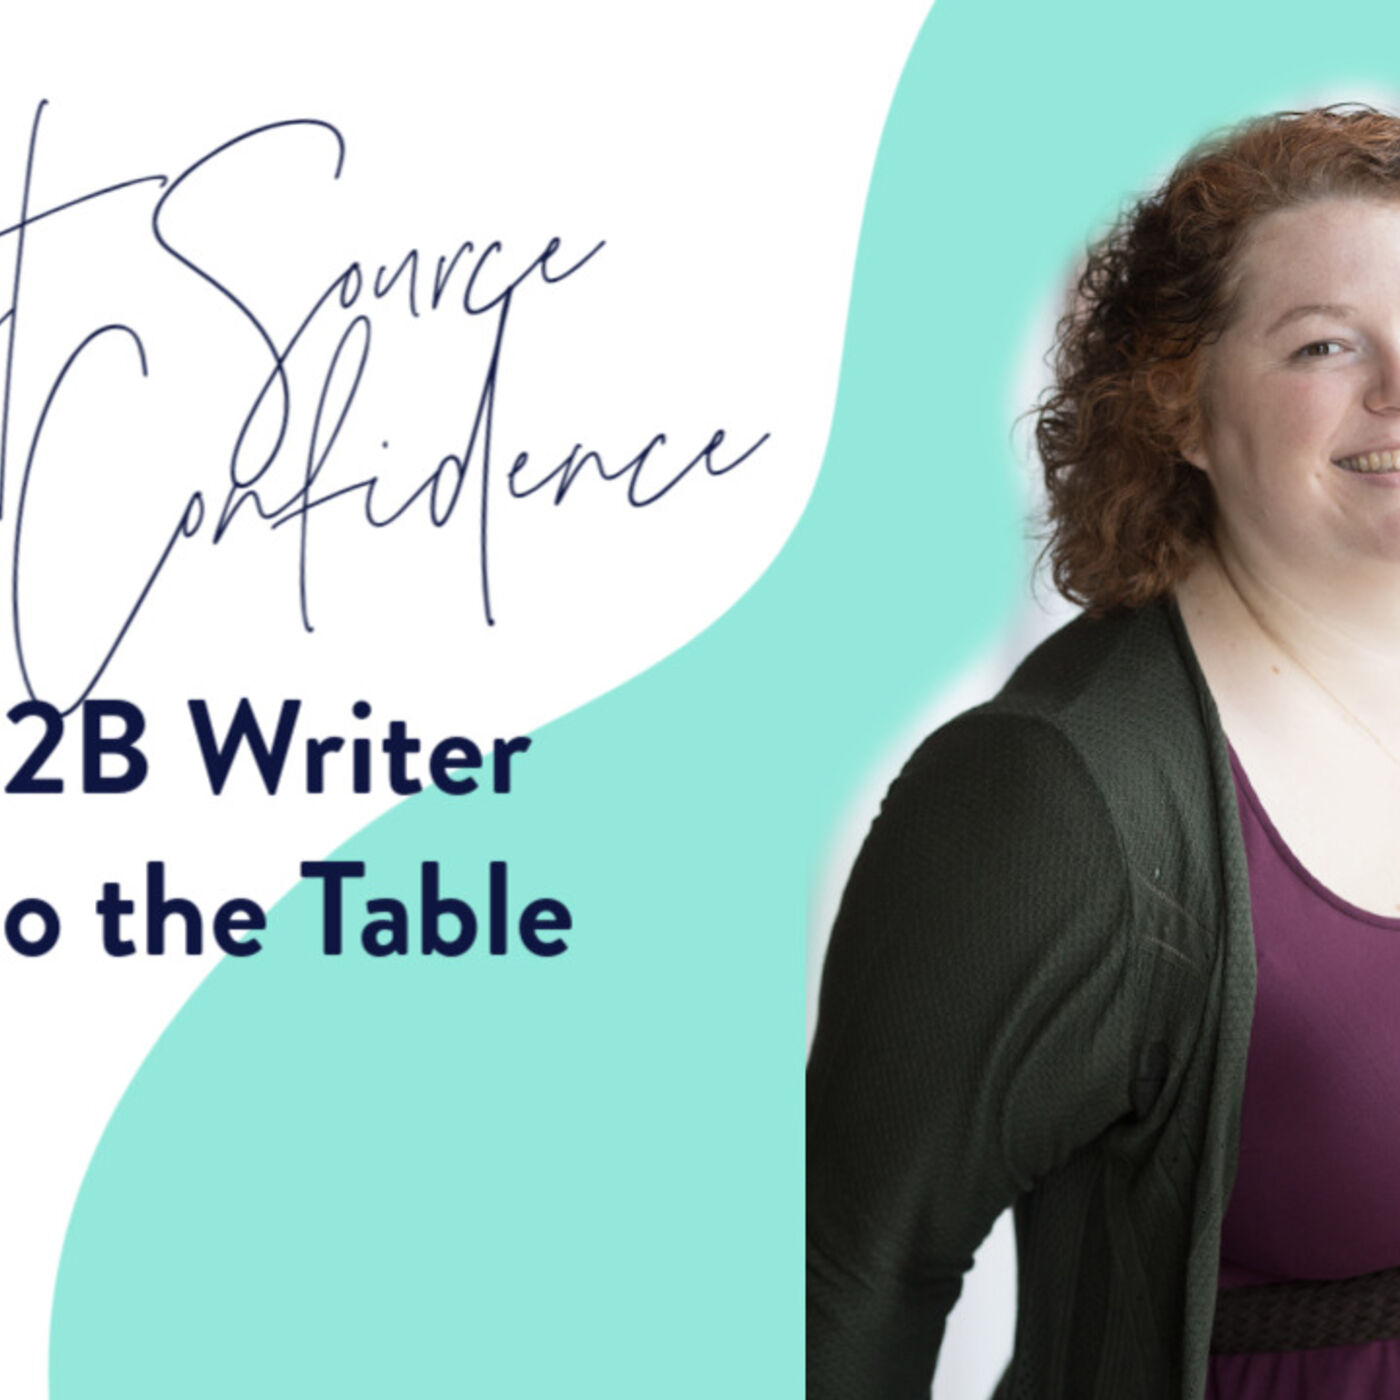 Quick Thoughts on a Secret Source of Confidence for B2B Writers.